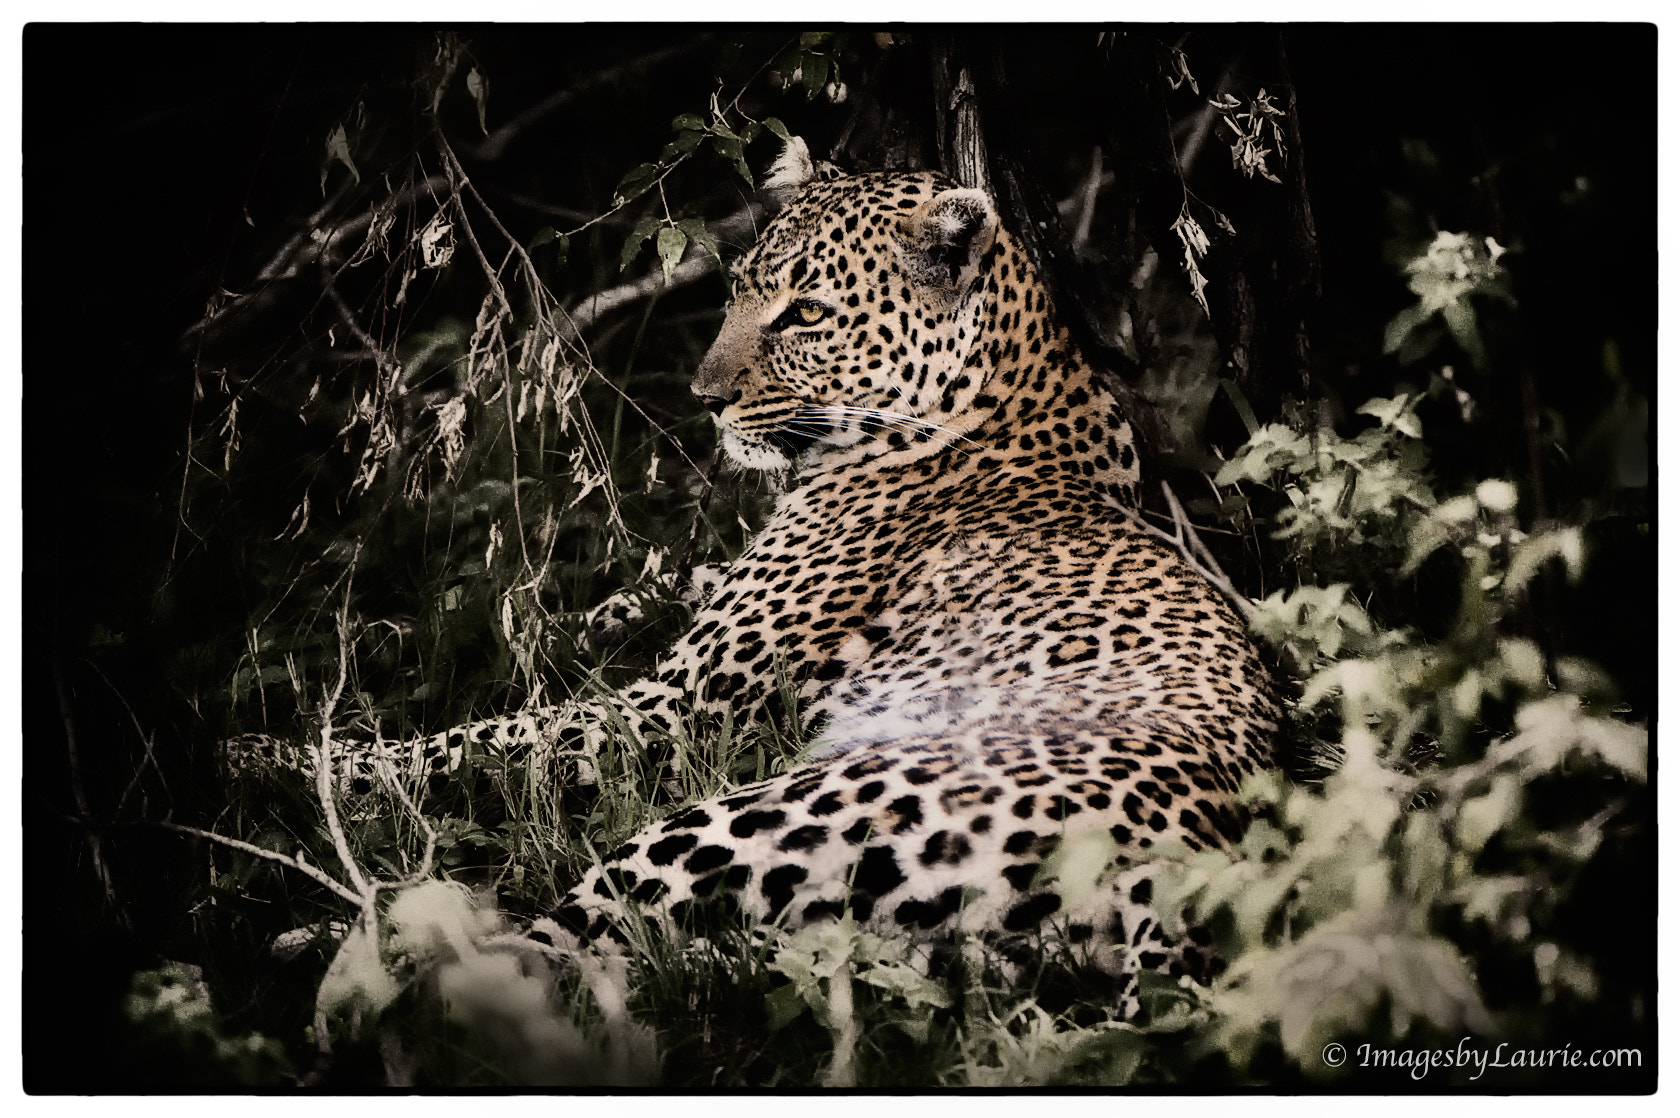 Photograph The Leopard by Laurie Rubin on 500px